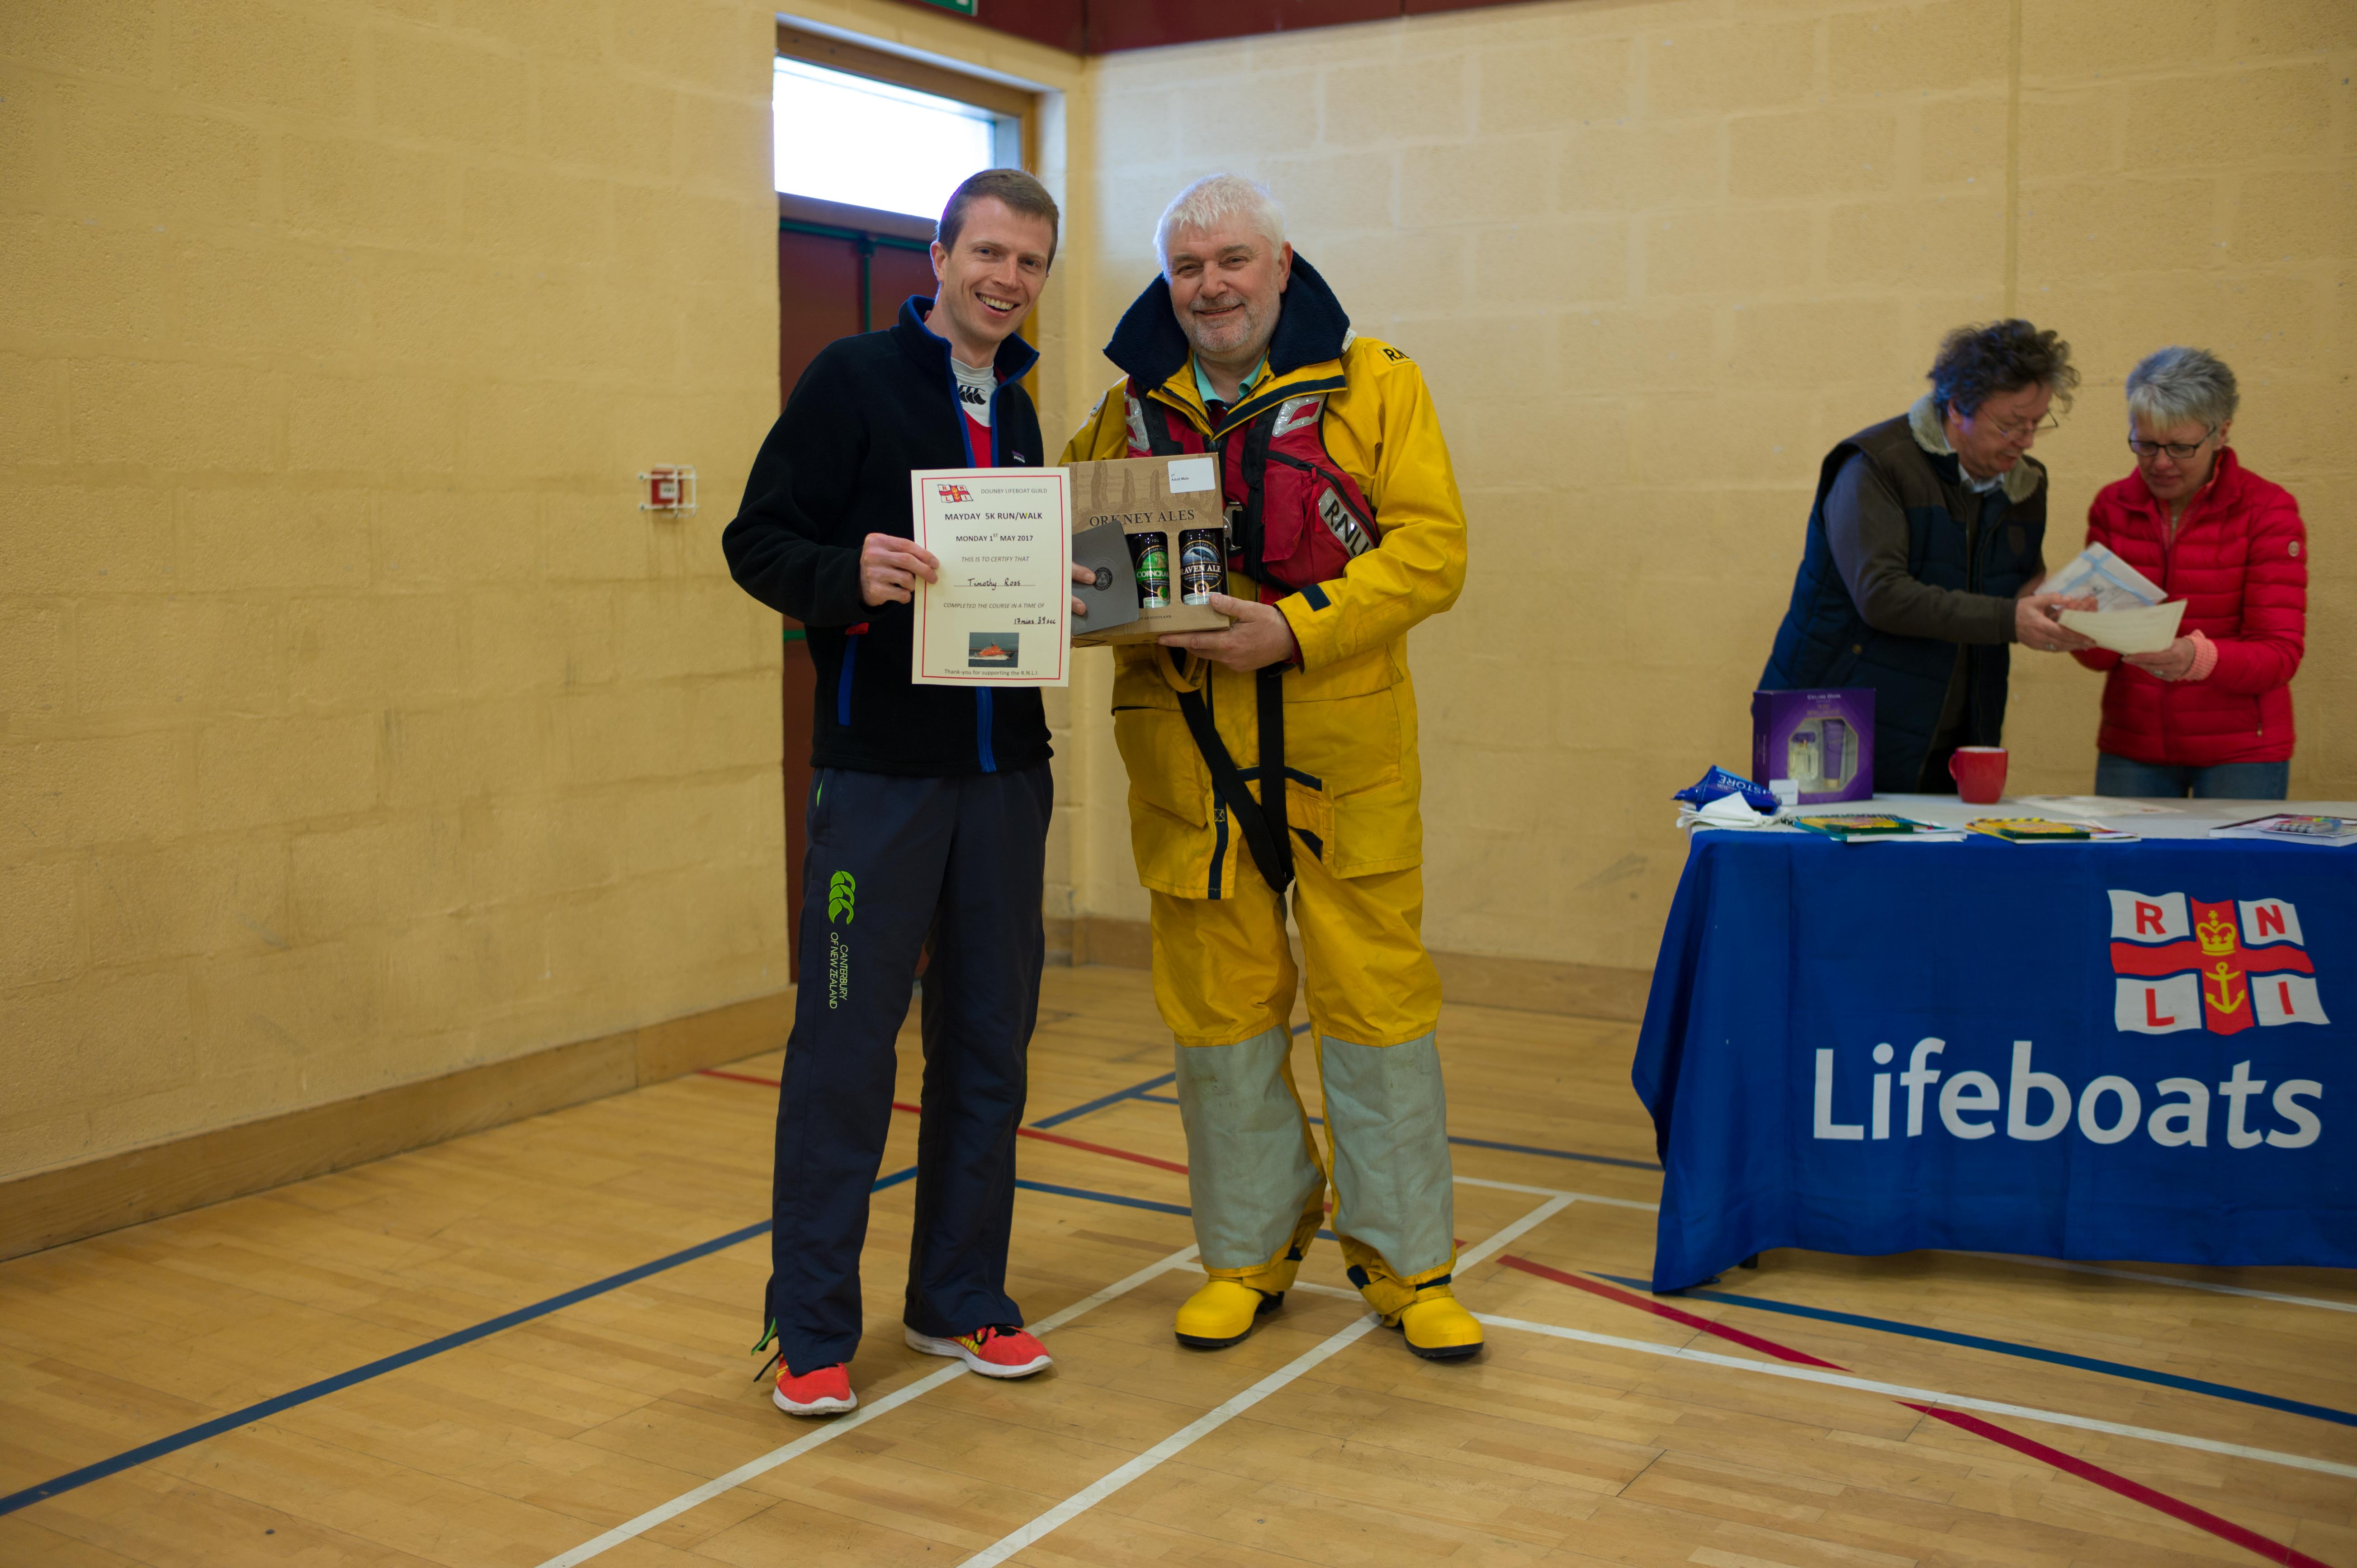 Photo shows Fred Breck standing alongside Tim Ross handing over beer and a certificate